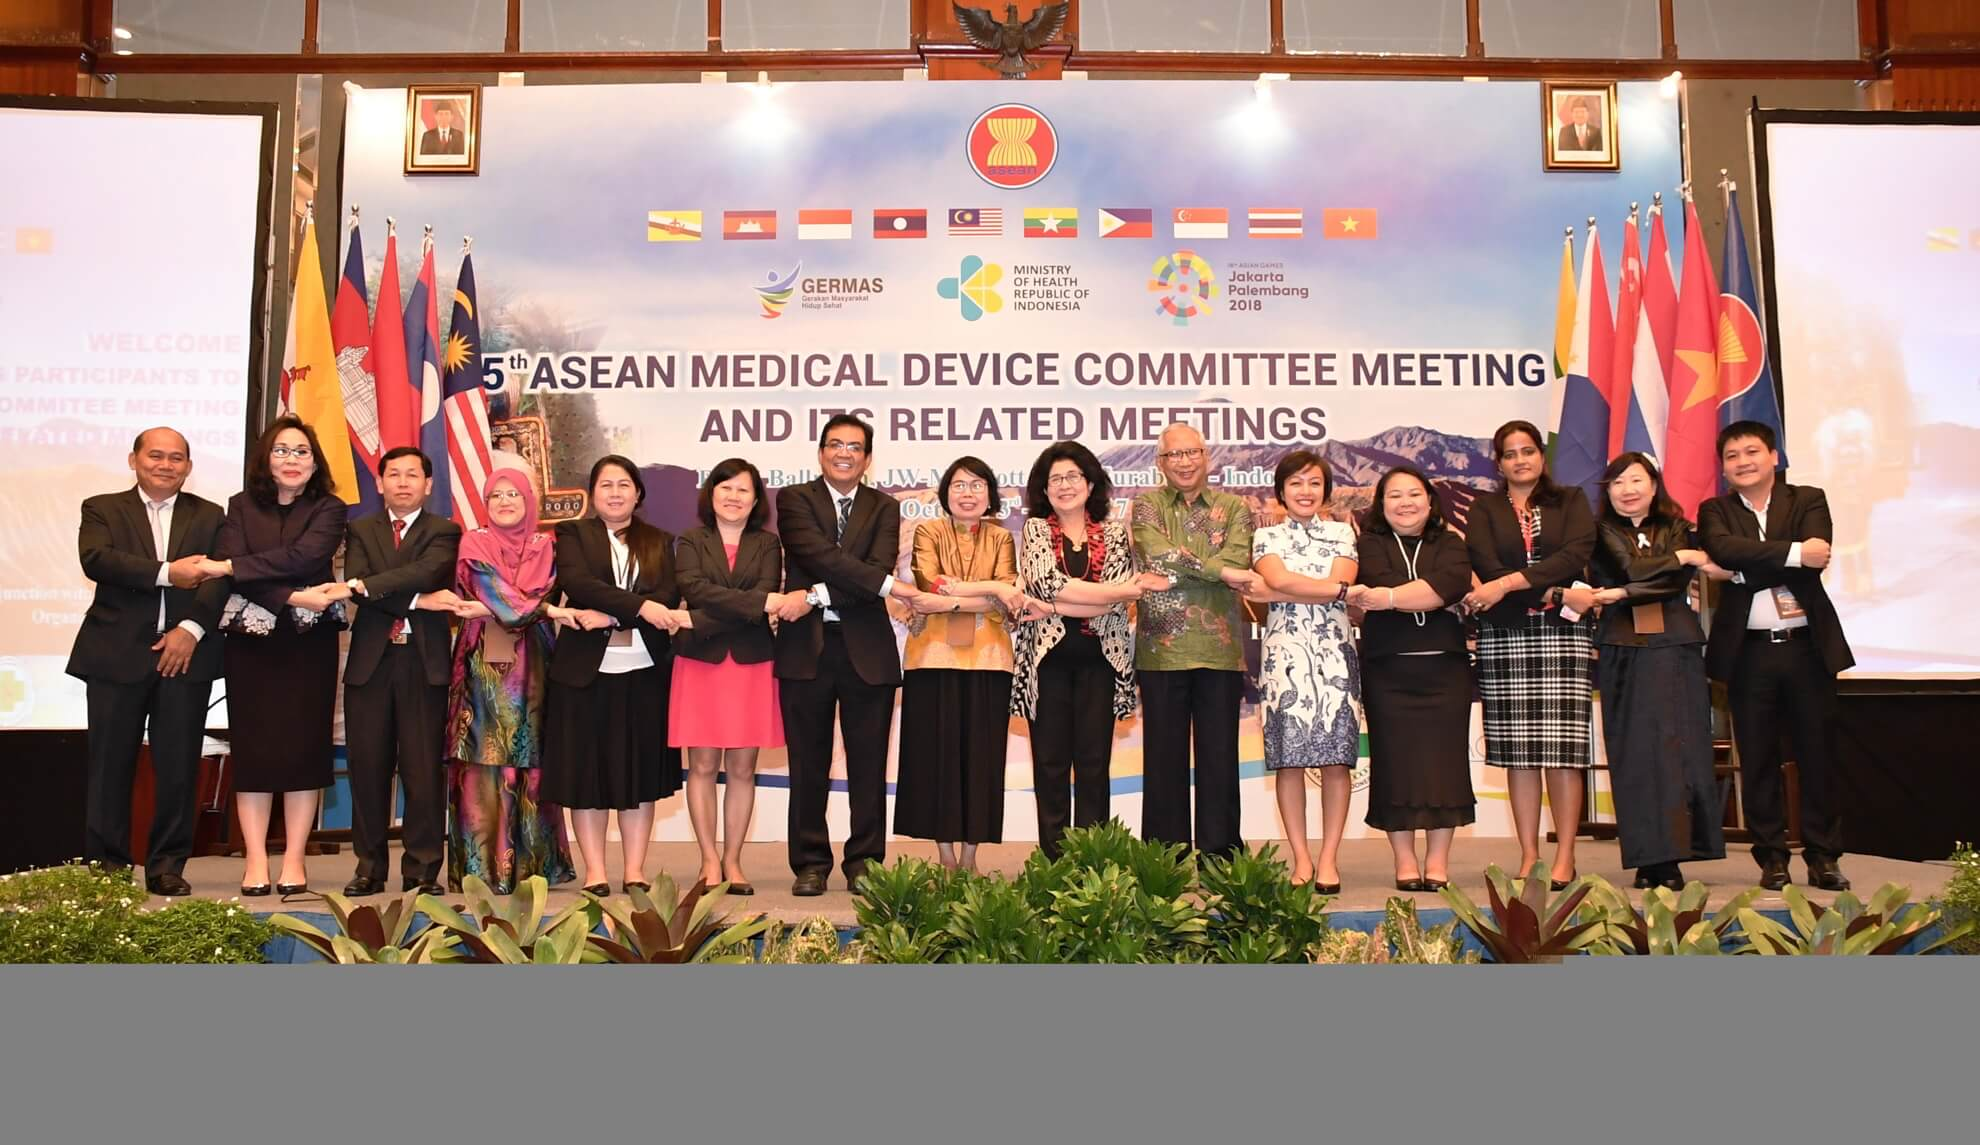 4-10-2017-foto-bersama-5th-asean-medical-devie-commitee-meeting-jw-mariot-surabaya-1